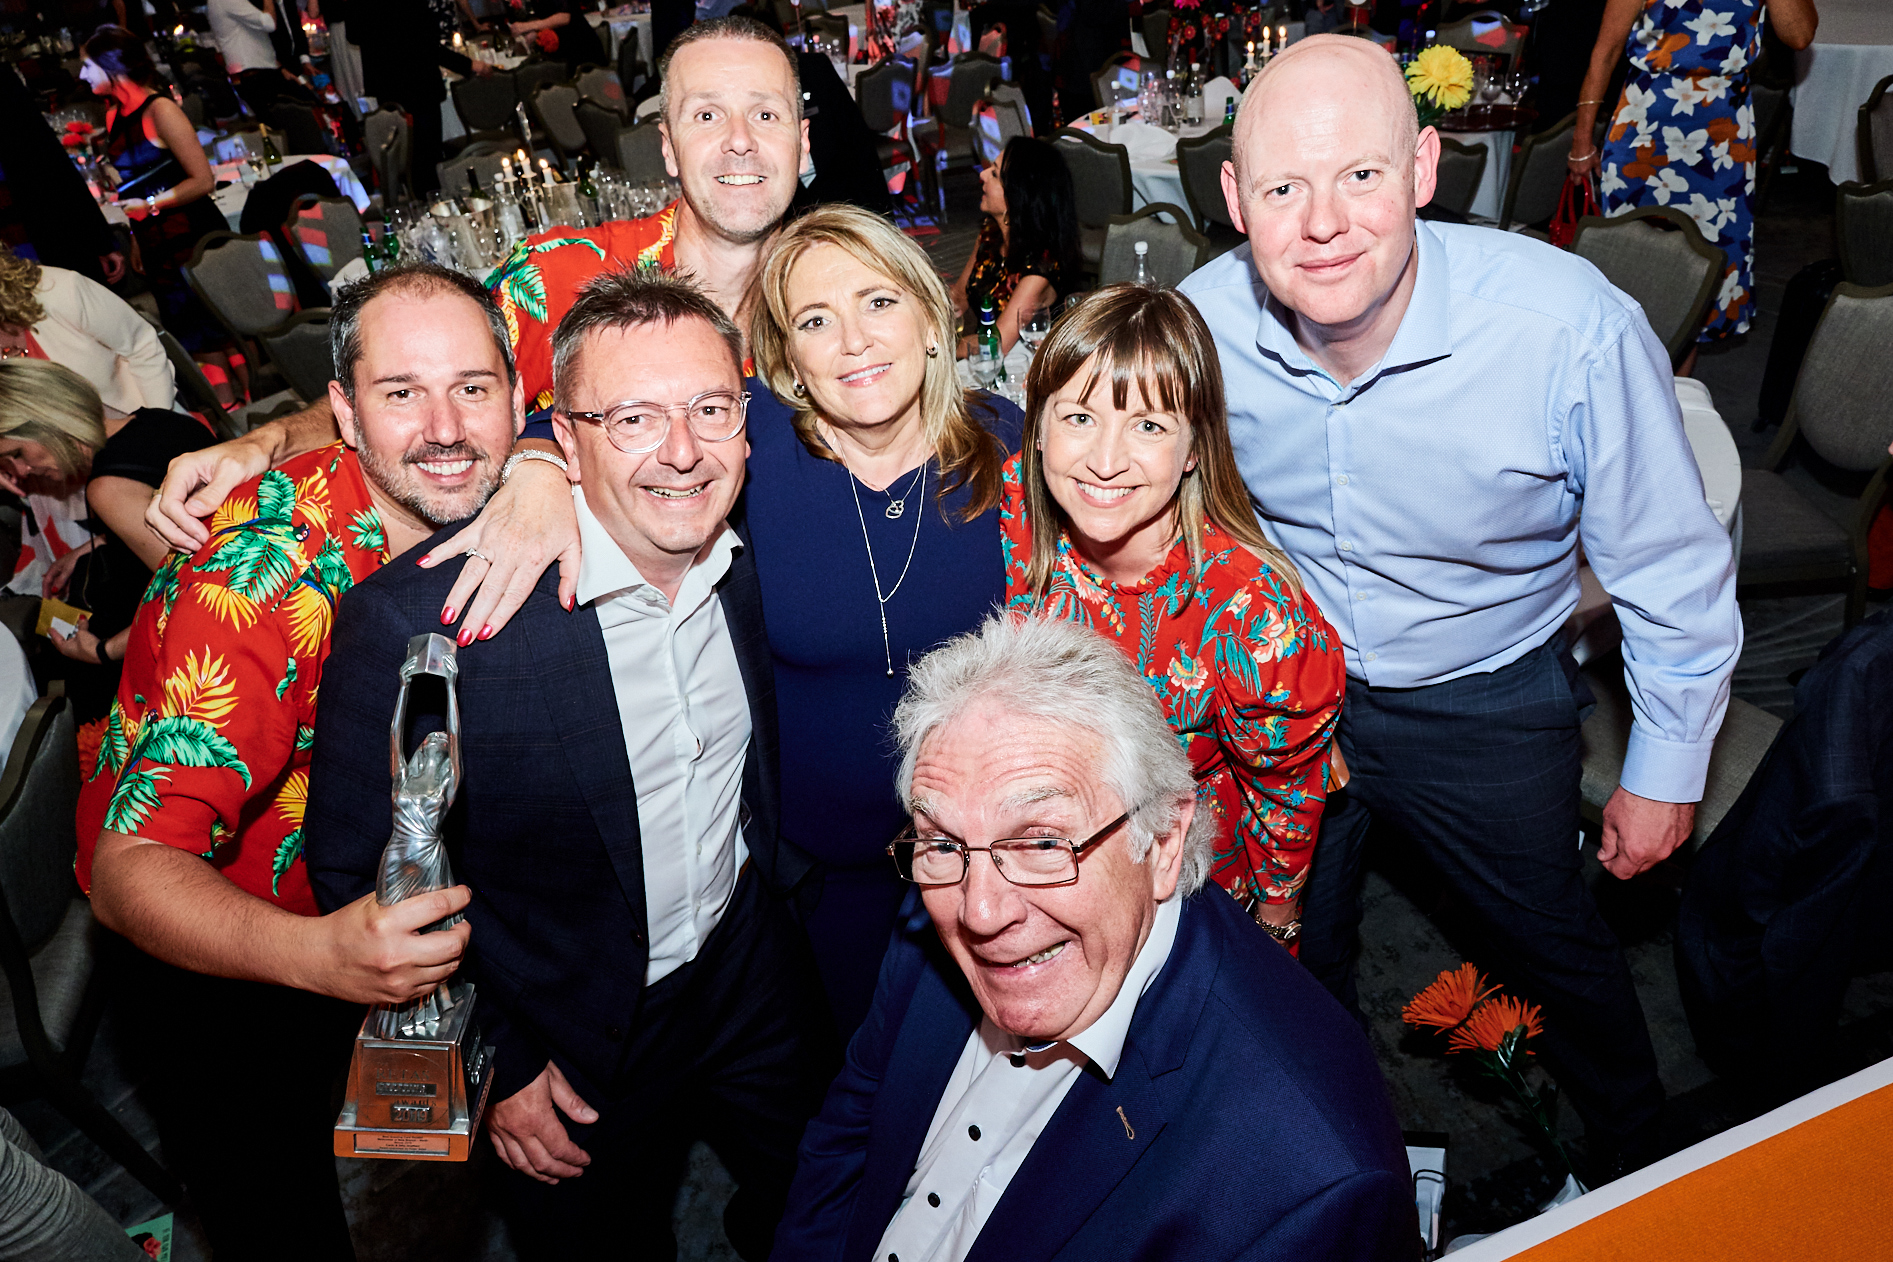 Above: Carl Dunne (at the back) with chums from the trade at The Retas 2019 event.